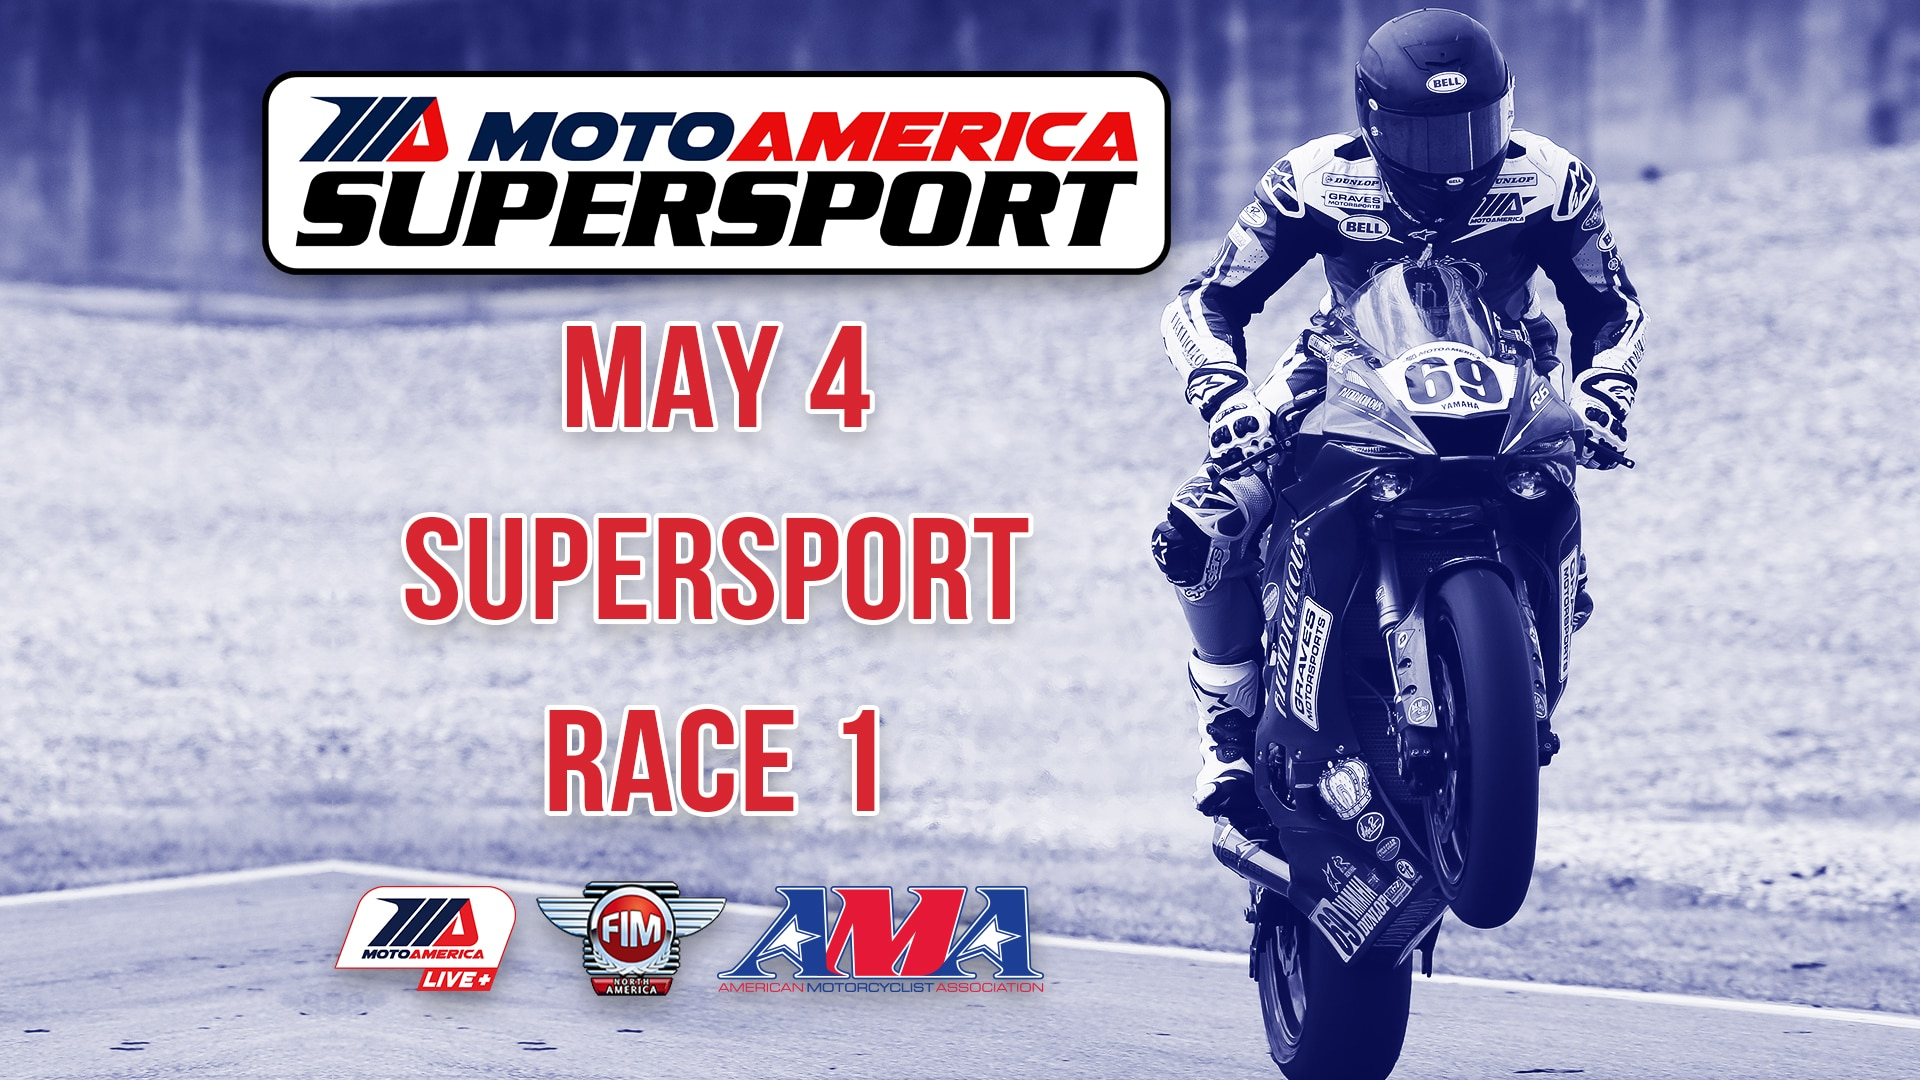 May 4 Supersport Race 1 | moto-america